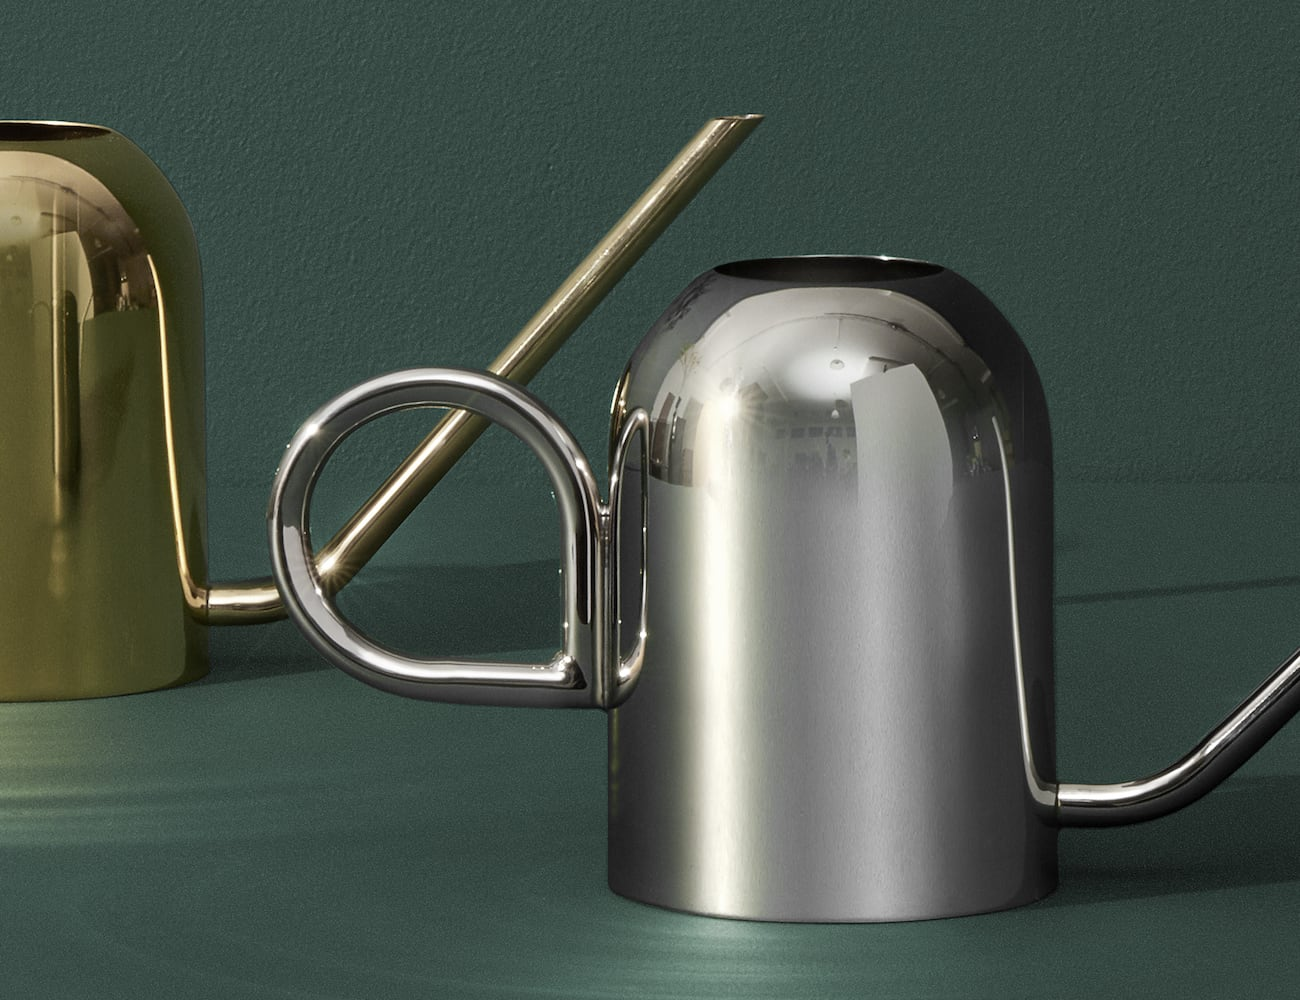 Cool Product Alert: A Beautiful Watering Can